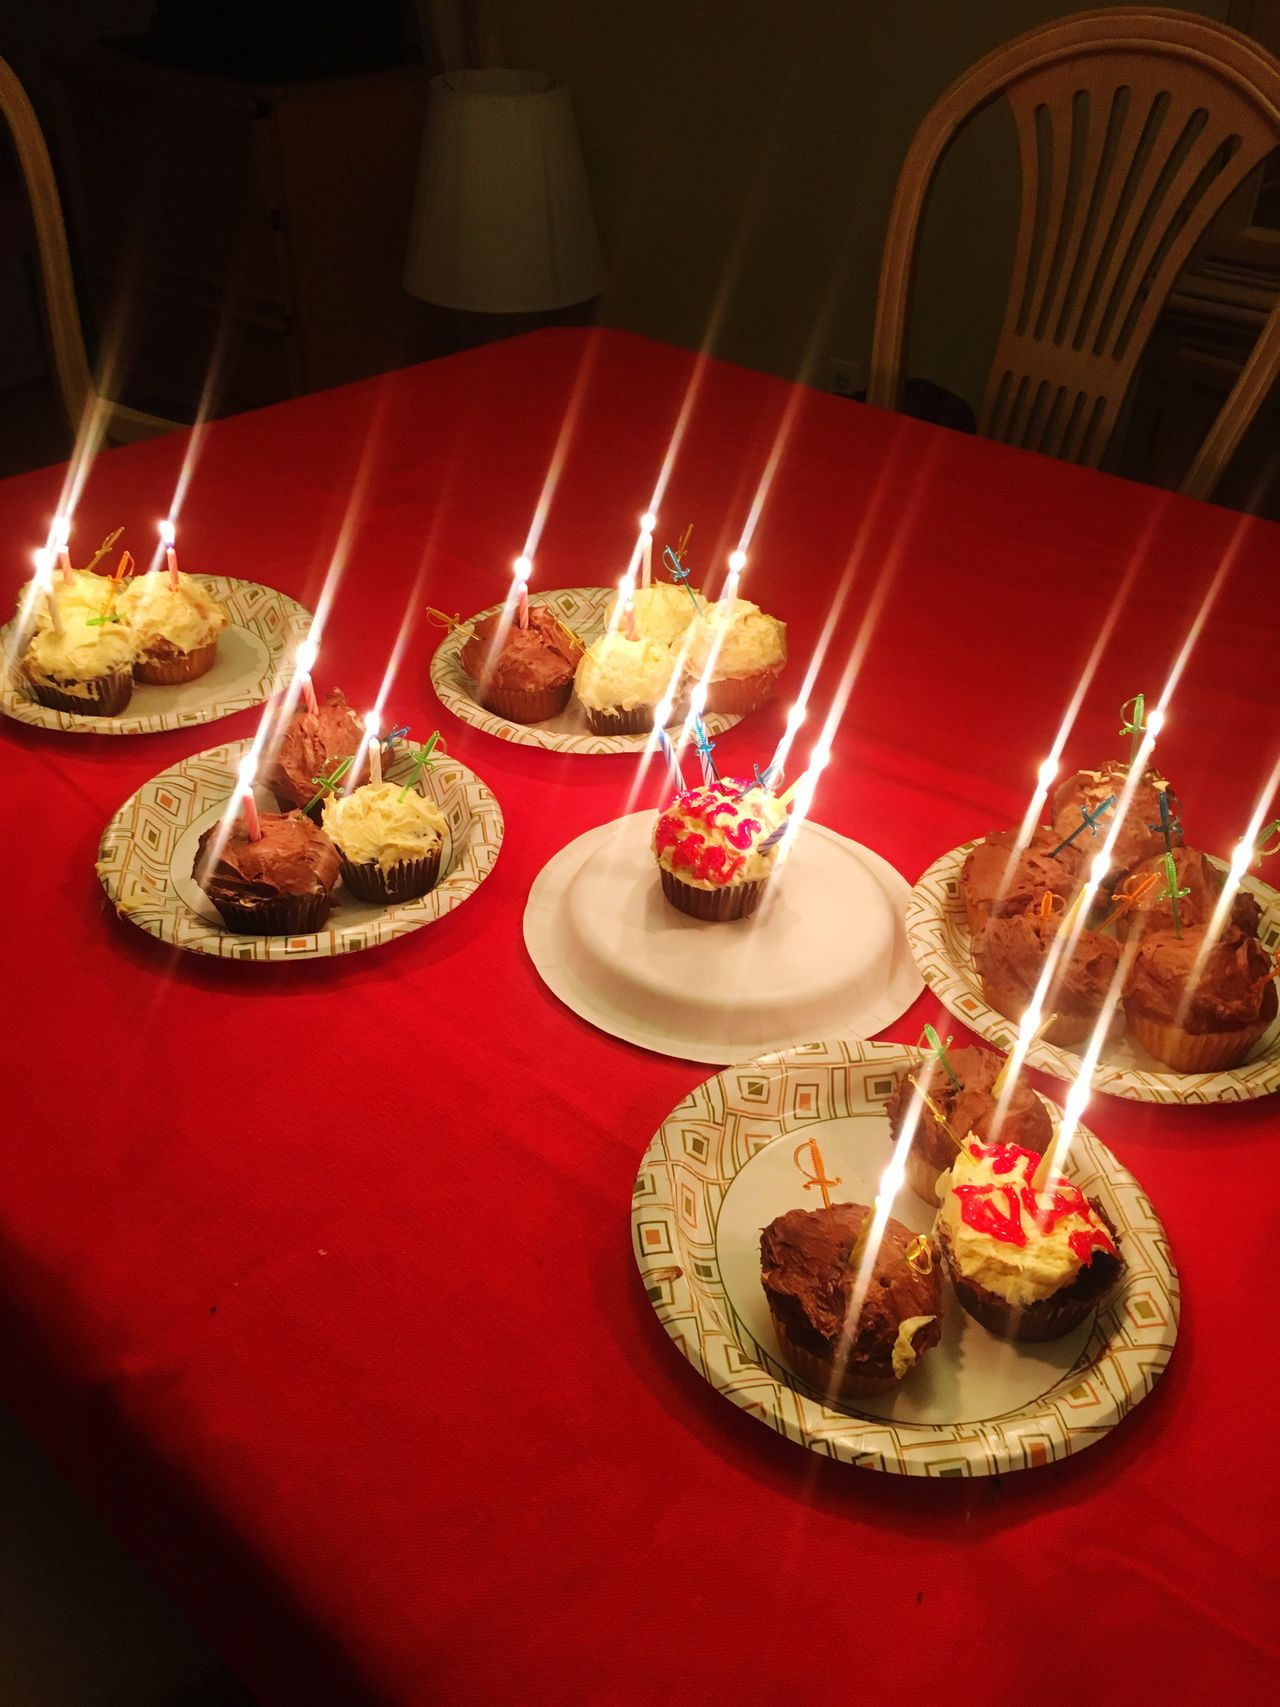 Celebrating My Birthday Son 23candles Cupcakes Red Tablecloth Home Is Where The Art Is Candles Glowing